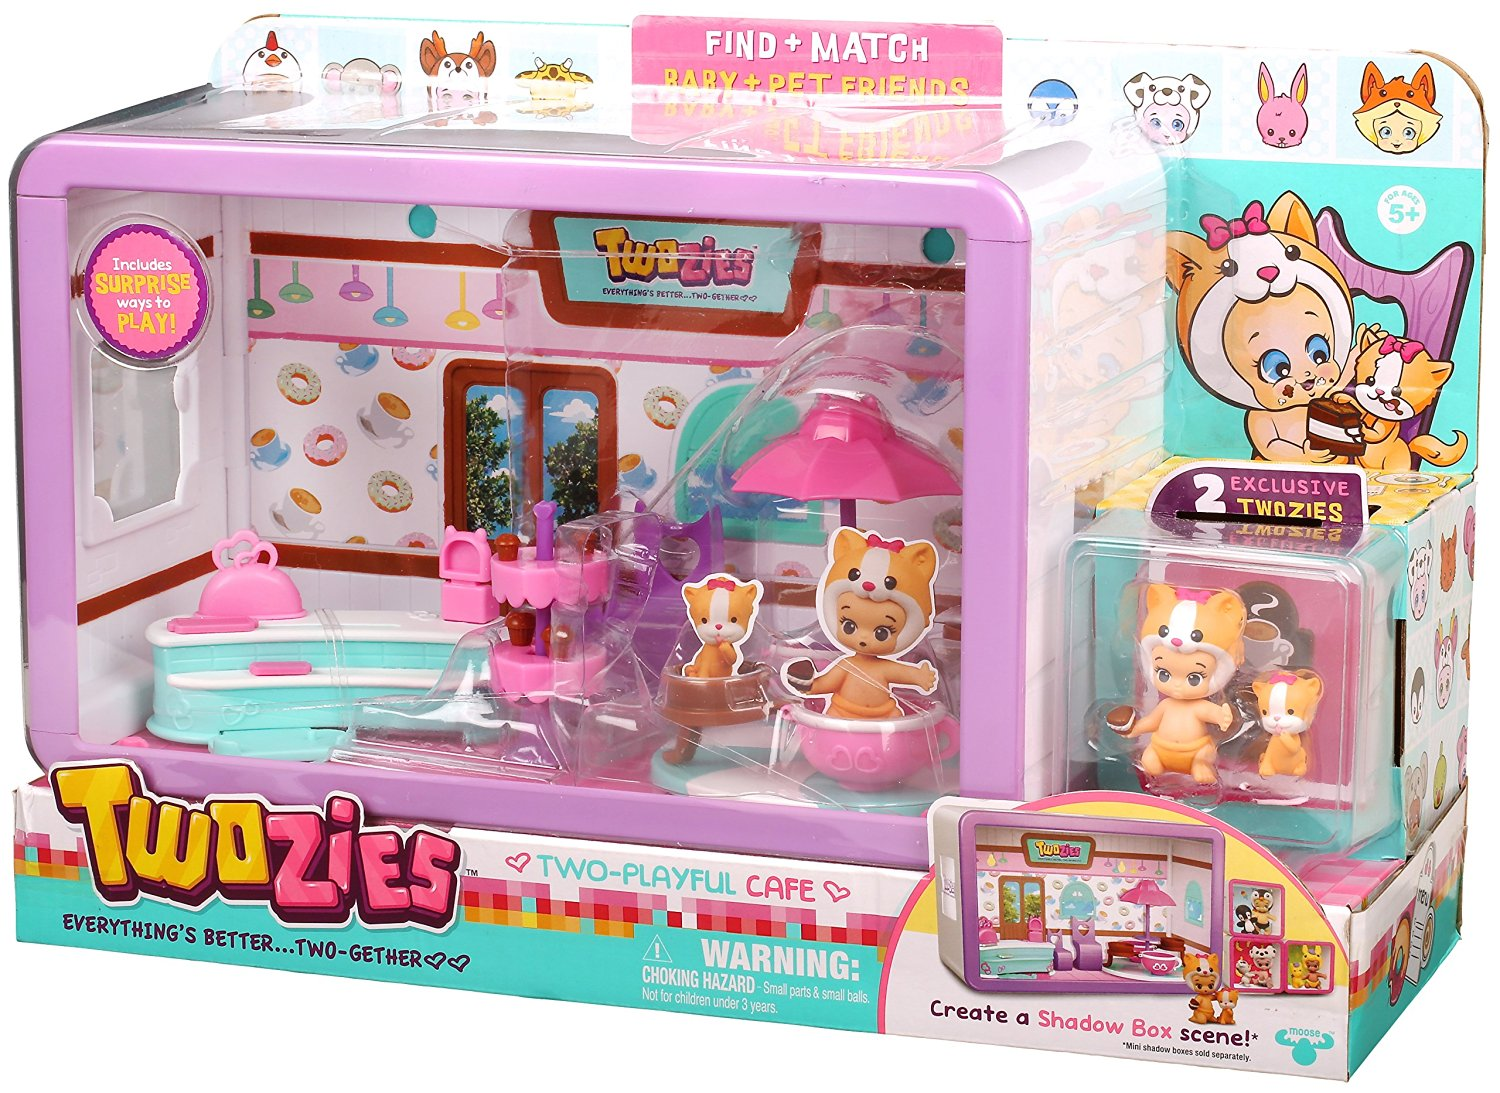 Amazon Deal – Twozies Cafe Playset on sale for $7.99, Save 60% Off